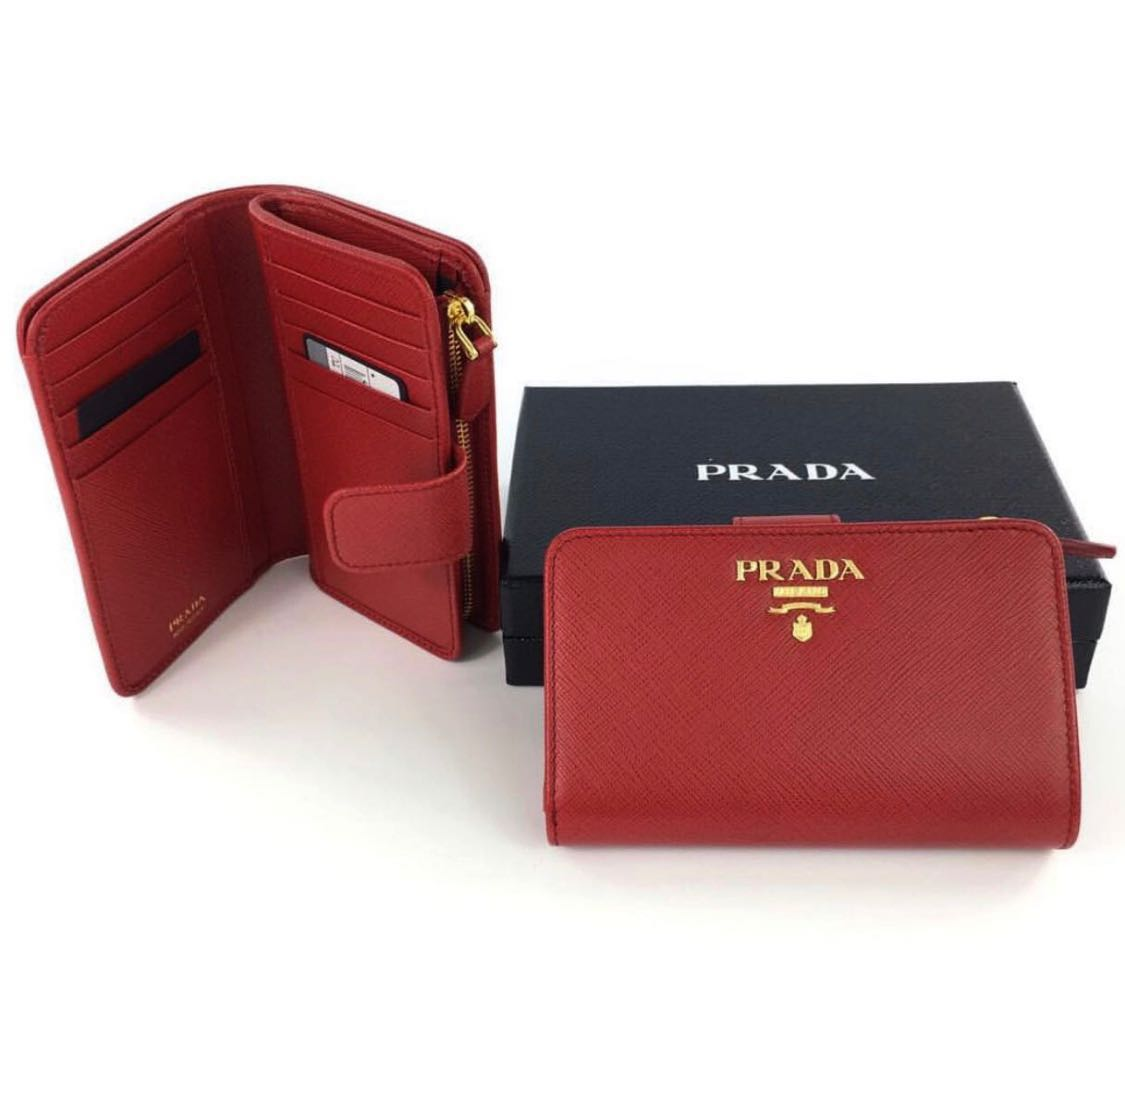 c9a03751e8c2 Prada wallet [SALE], Luxury, Bags & Wallets, Wallets on Carousell